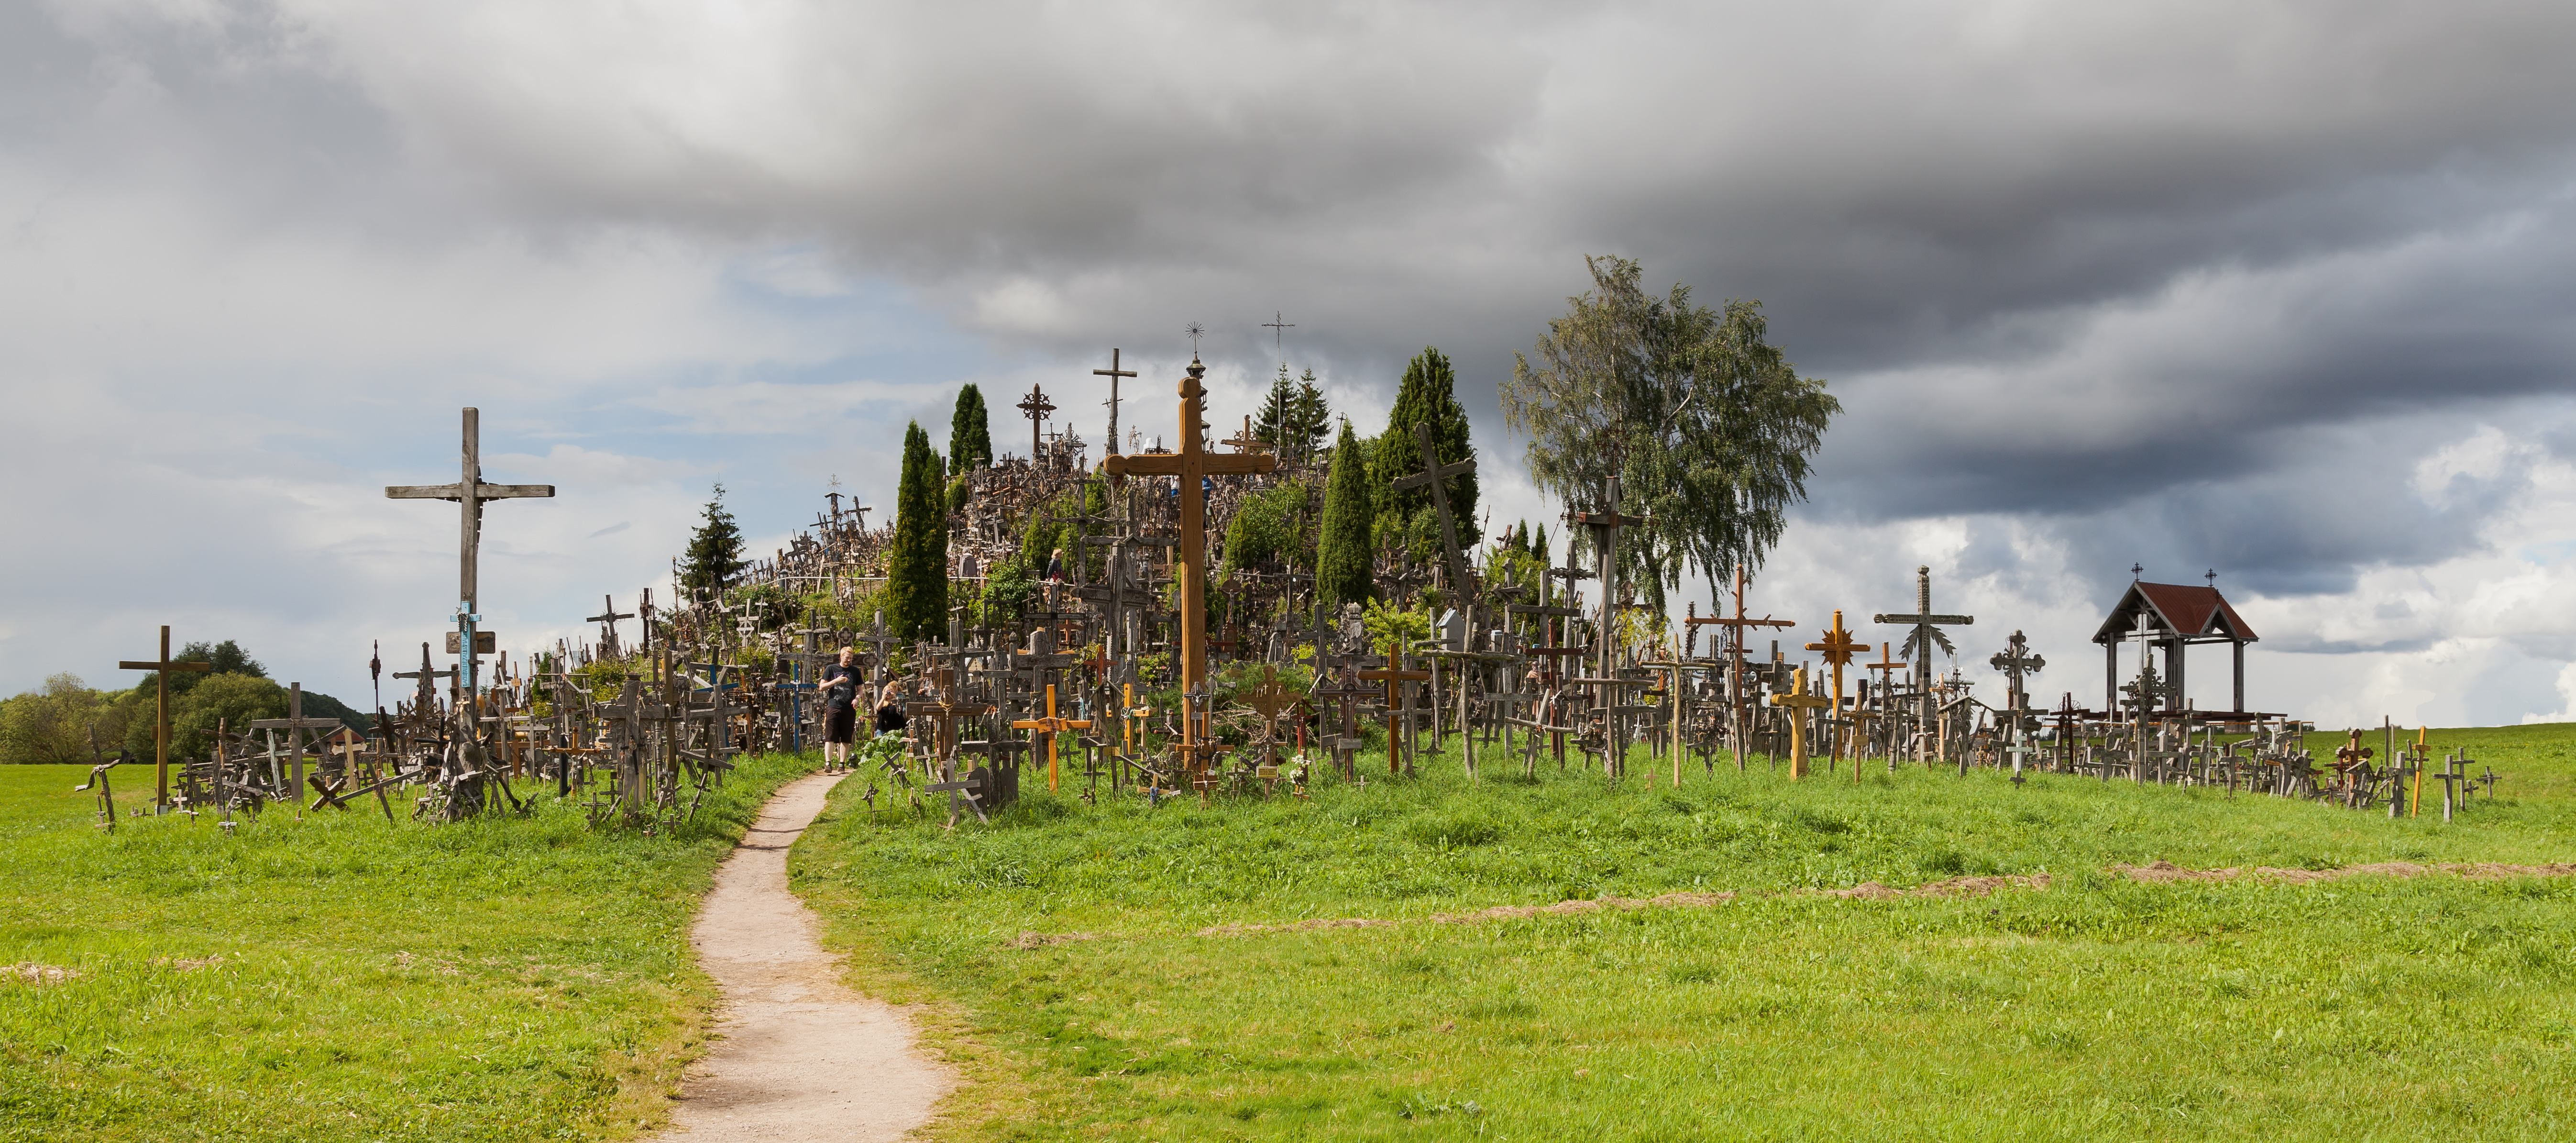 Hill of Crosses Haunted of The Hill of Crosses